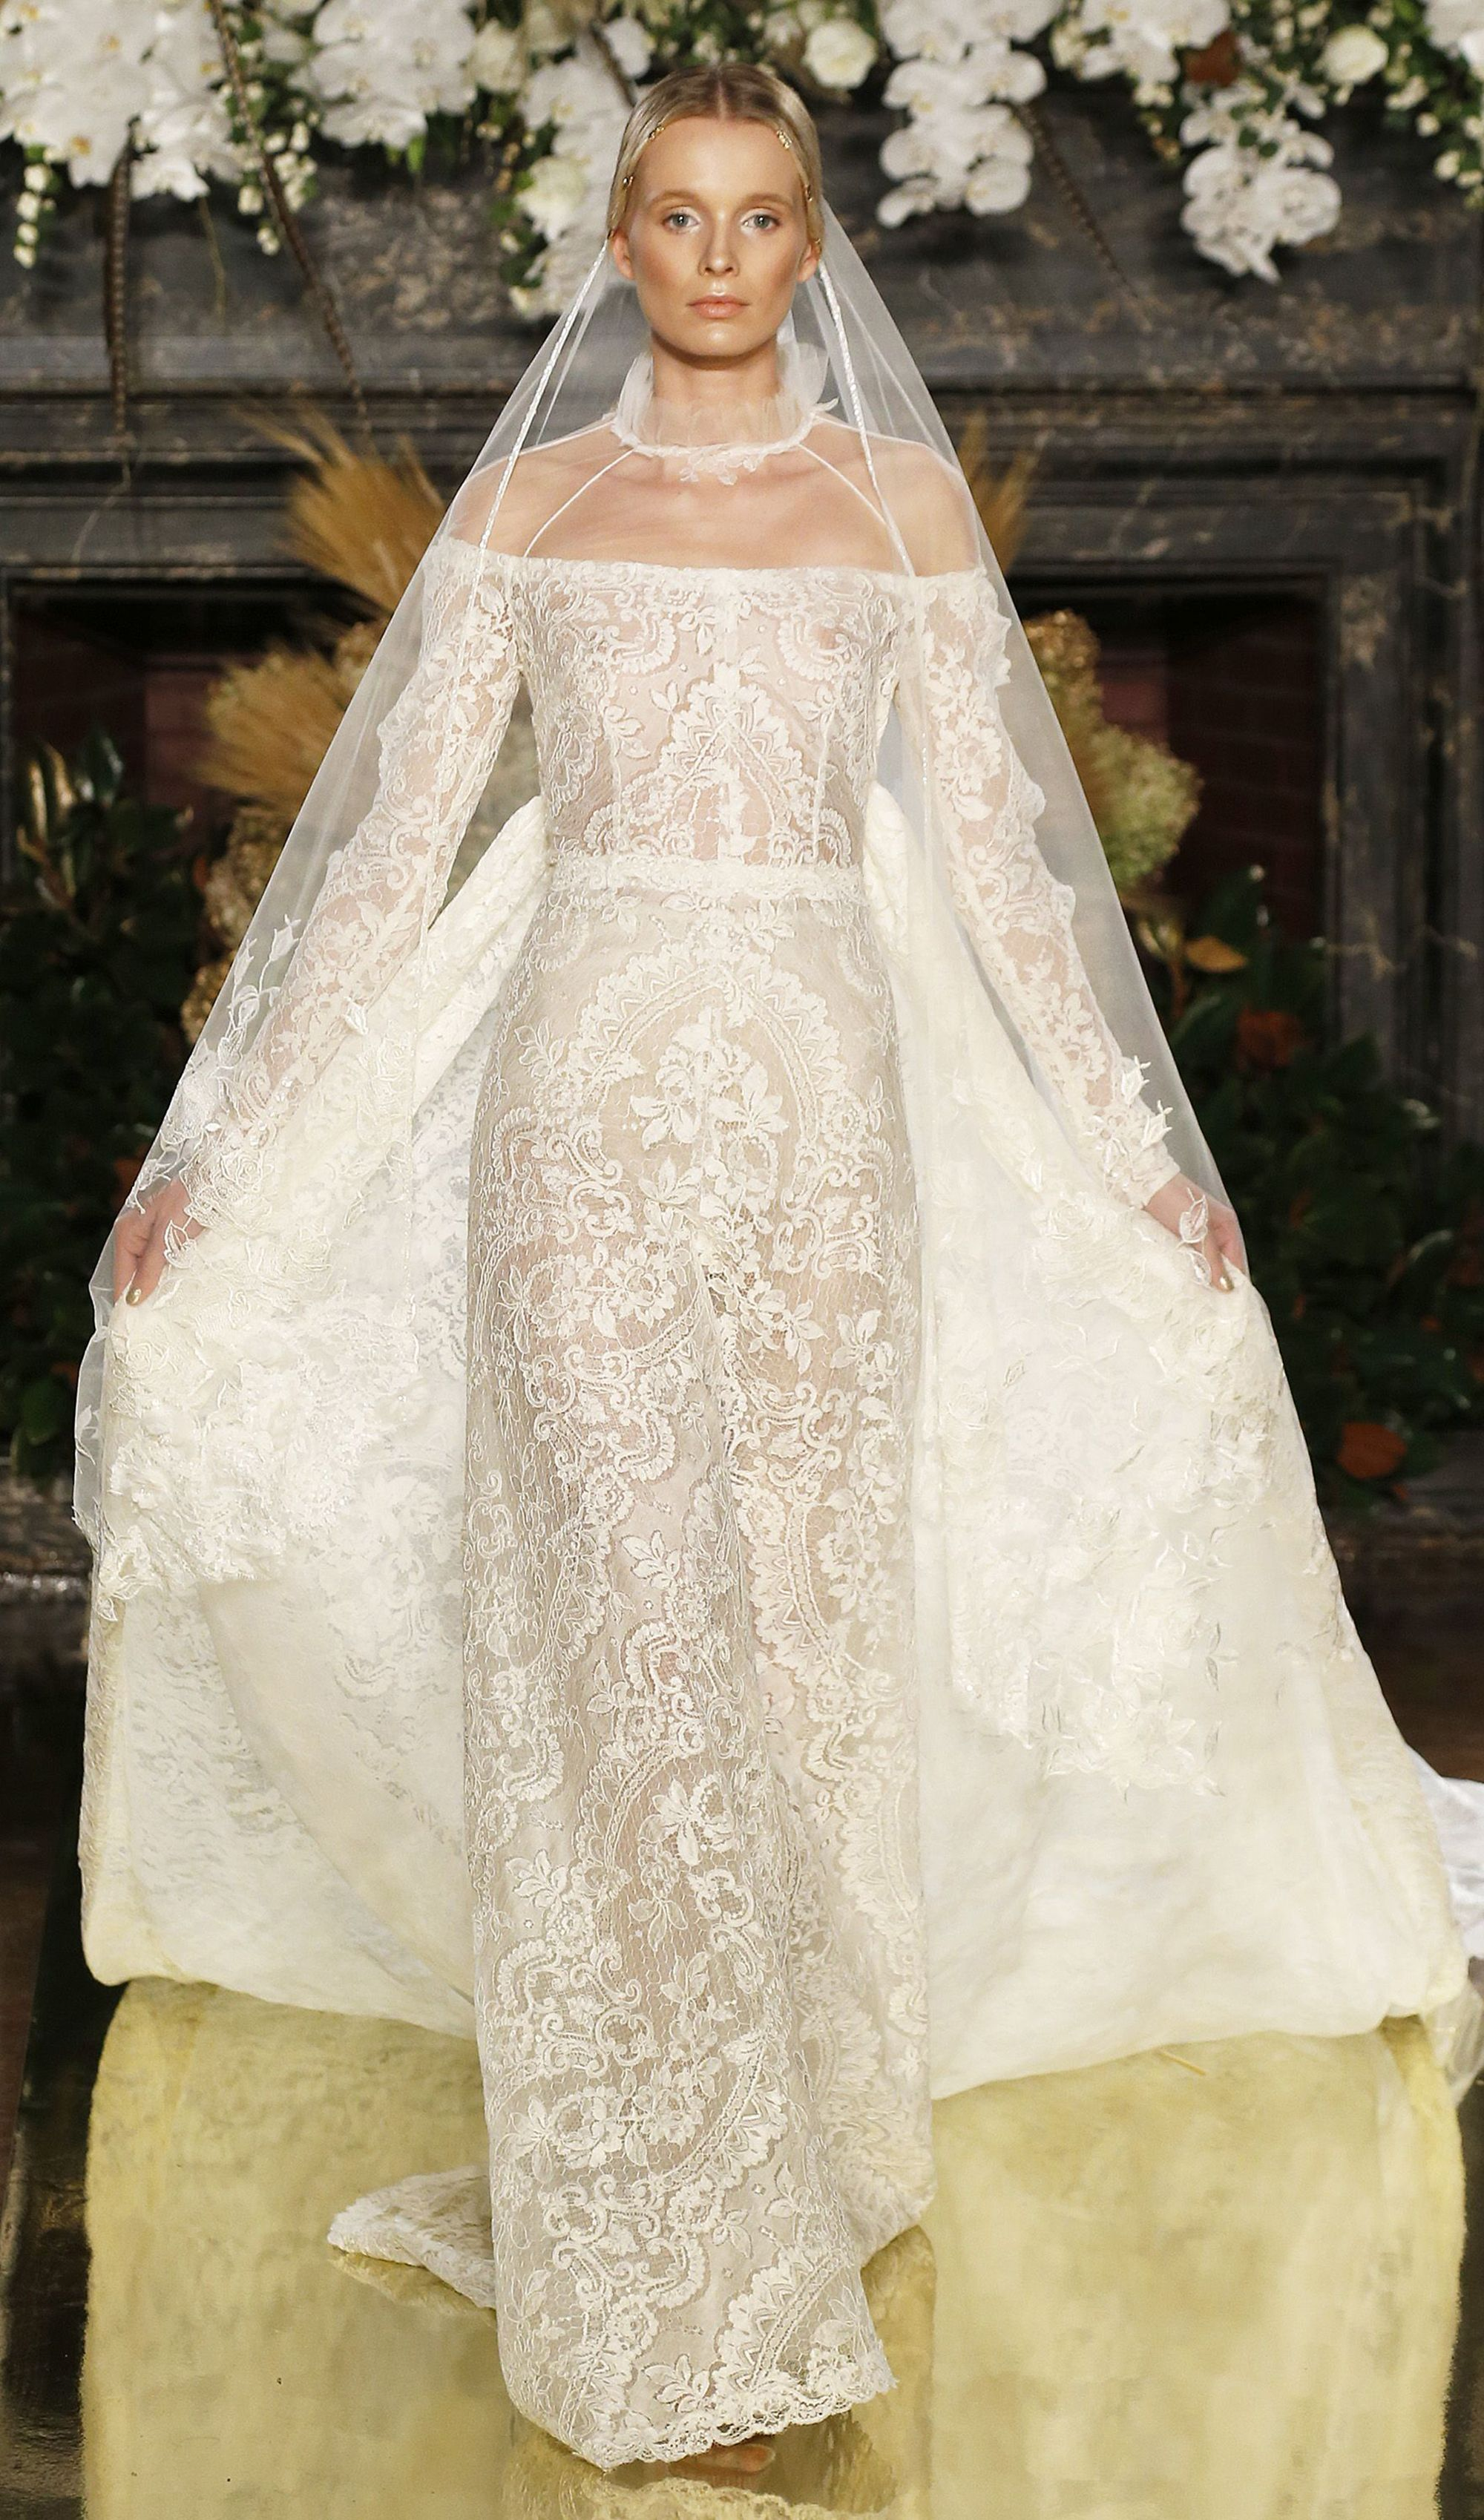 The Most Beautiful Wedding Dresses From New York Bridal Fashion Week